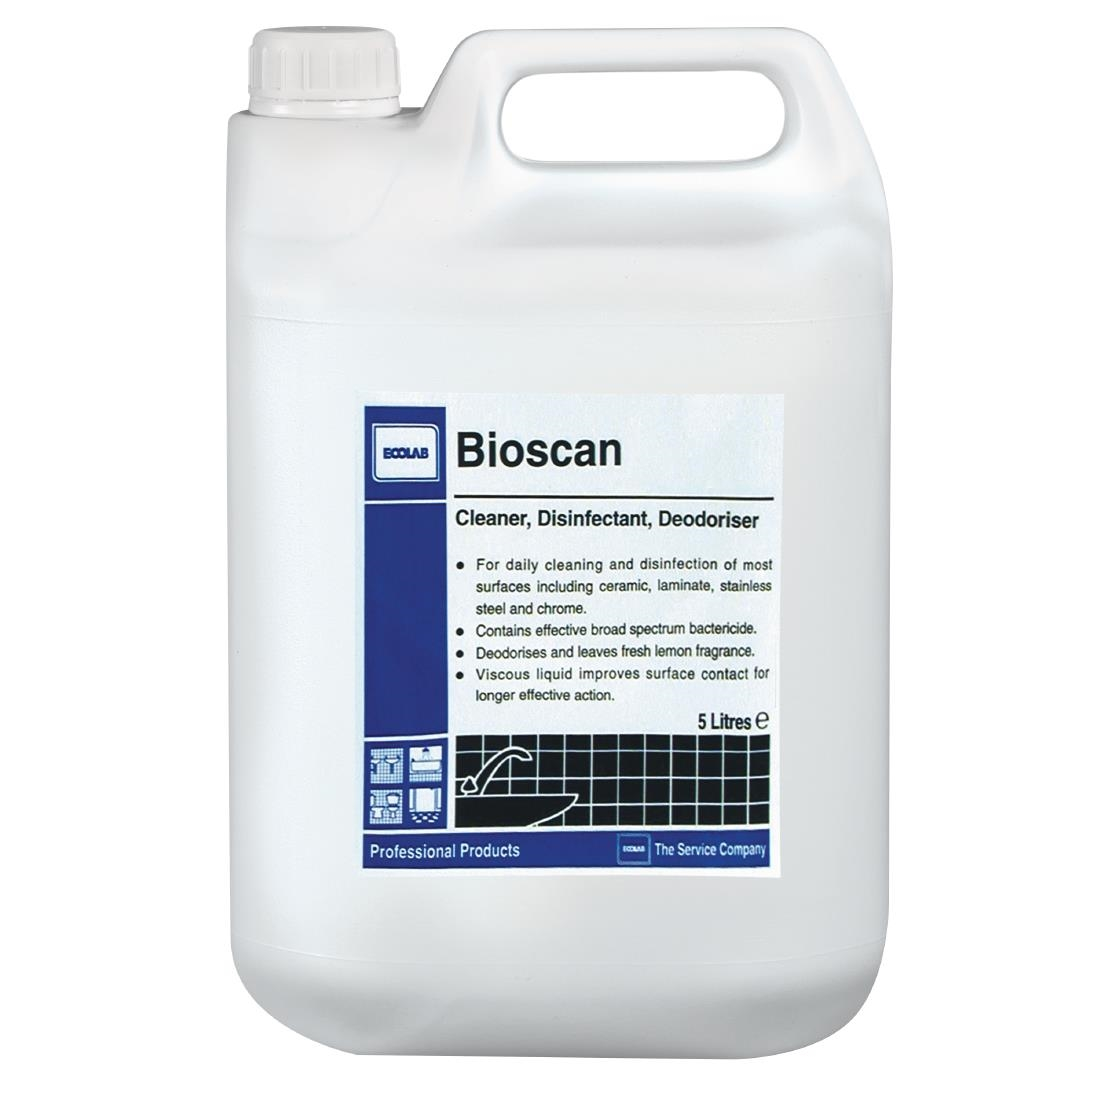 Image of Ecolab Bioscan Lemon Hard Surface Cleaner and Disinfectant Concentrate 5Ltr (4 Pack) Pack of 4